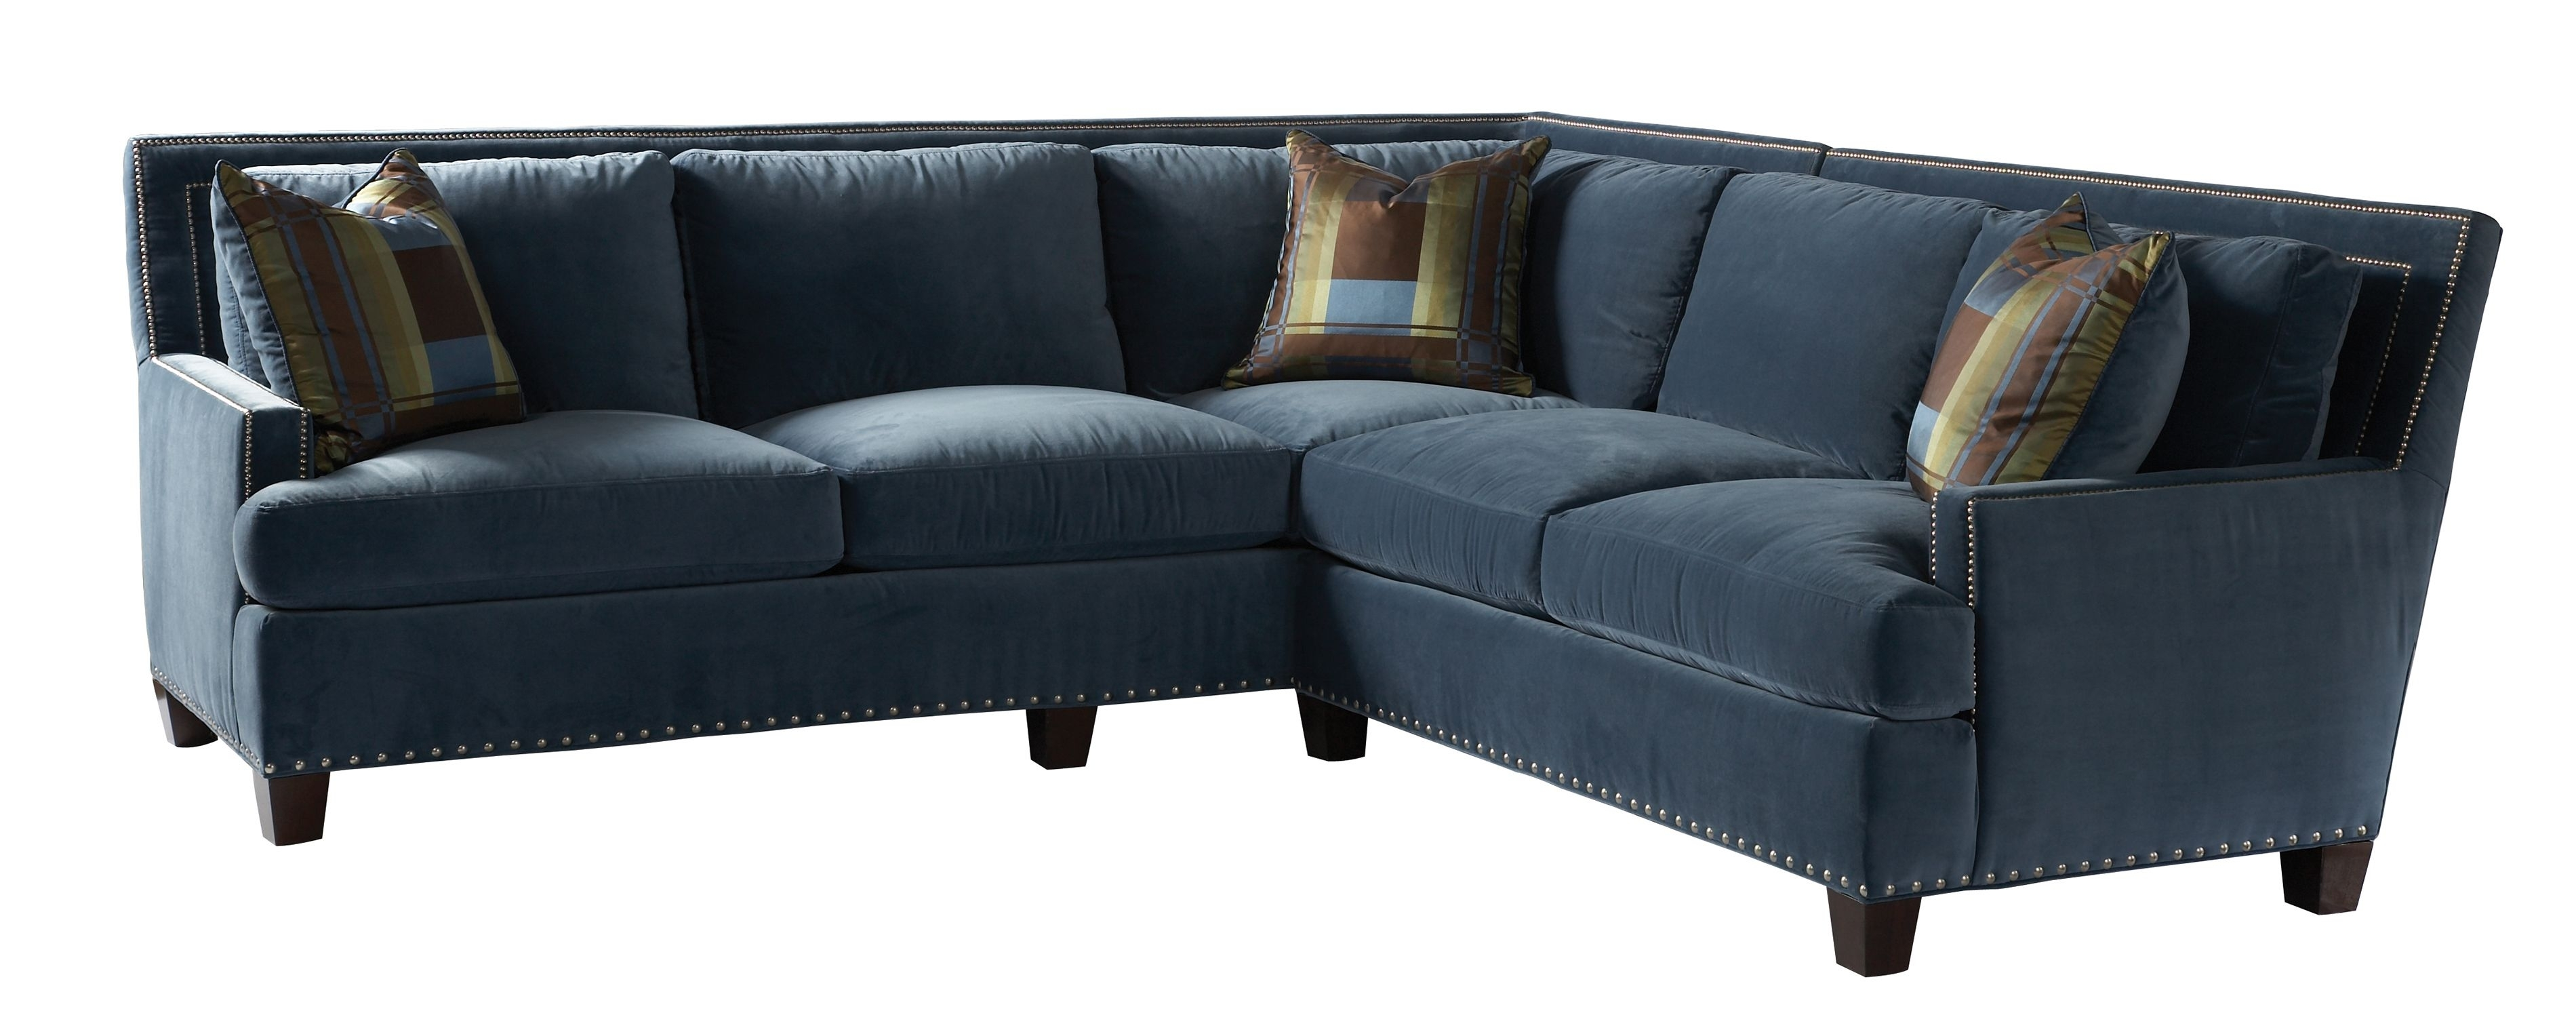 Awesome Furniture Store Grand Rapids Mi Interior Design Ideas Of In In Grand Rapids Mi Sectional Sofas (View 7 of 10)